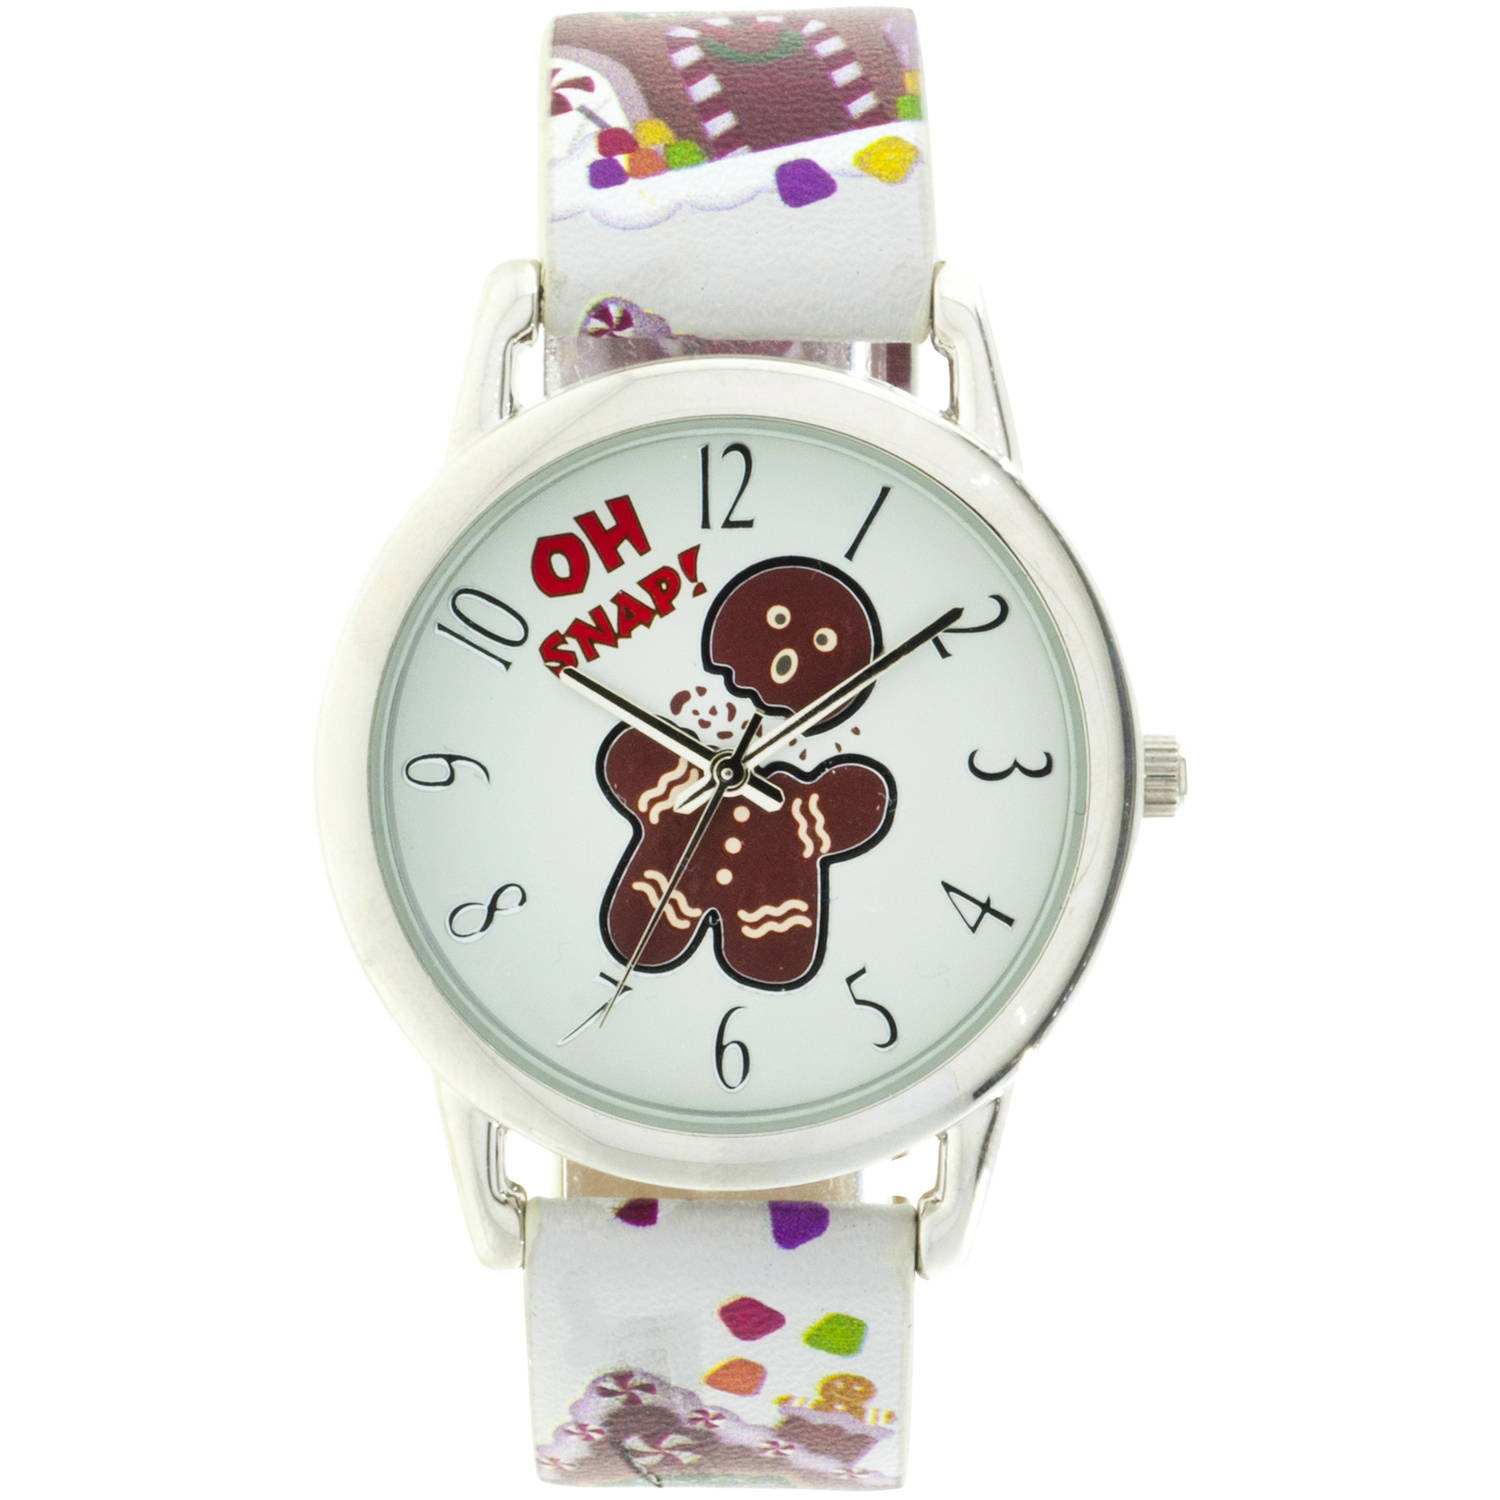 """Oh Snap"" Gingerbread Man Round Silver Ugly Christmas Watch,Multi-Color Candy Cane Strap"